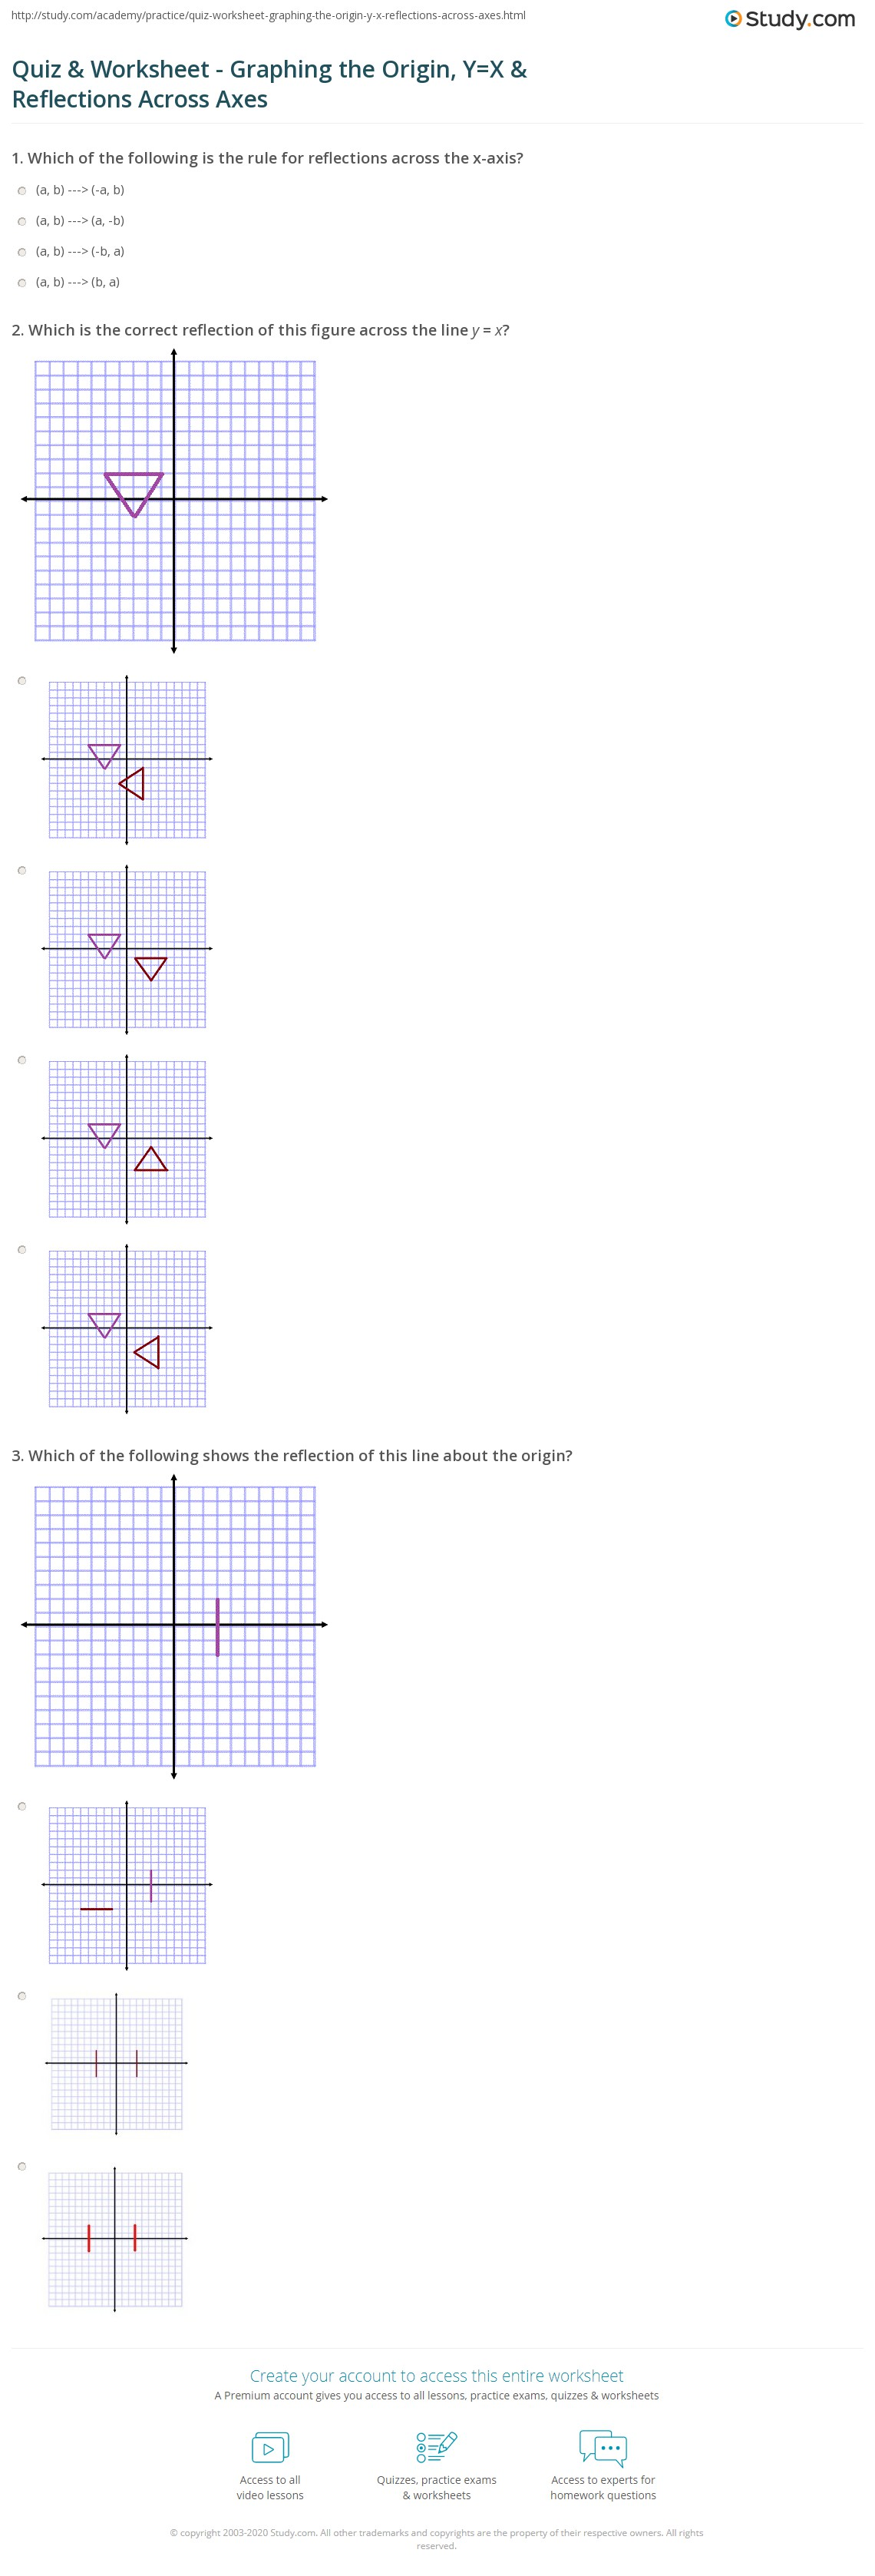 Quiz Worksheet Graphing The Origin Yx Reflections Across